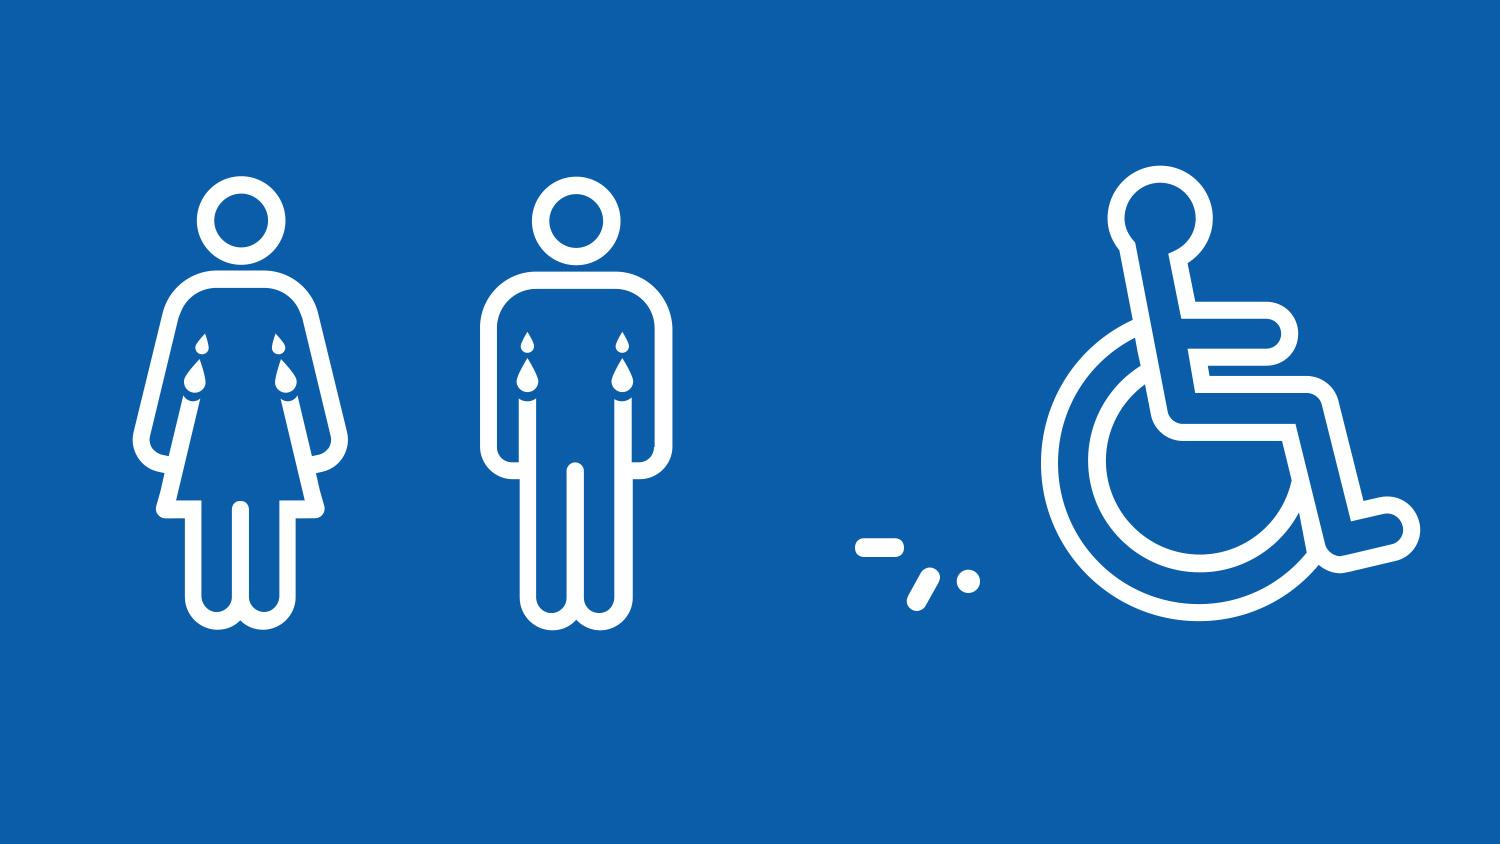 These designers have reimagined the 'wheelchair symbol' to ... Handicap Logo Redesign